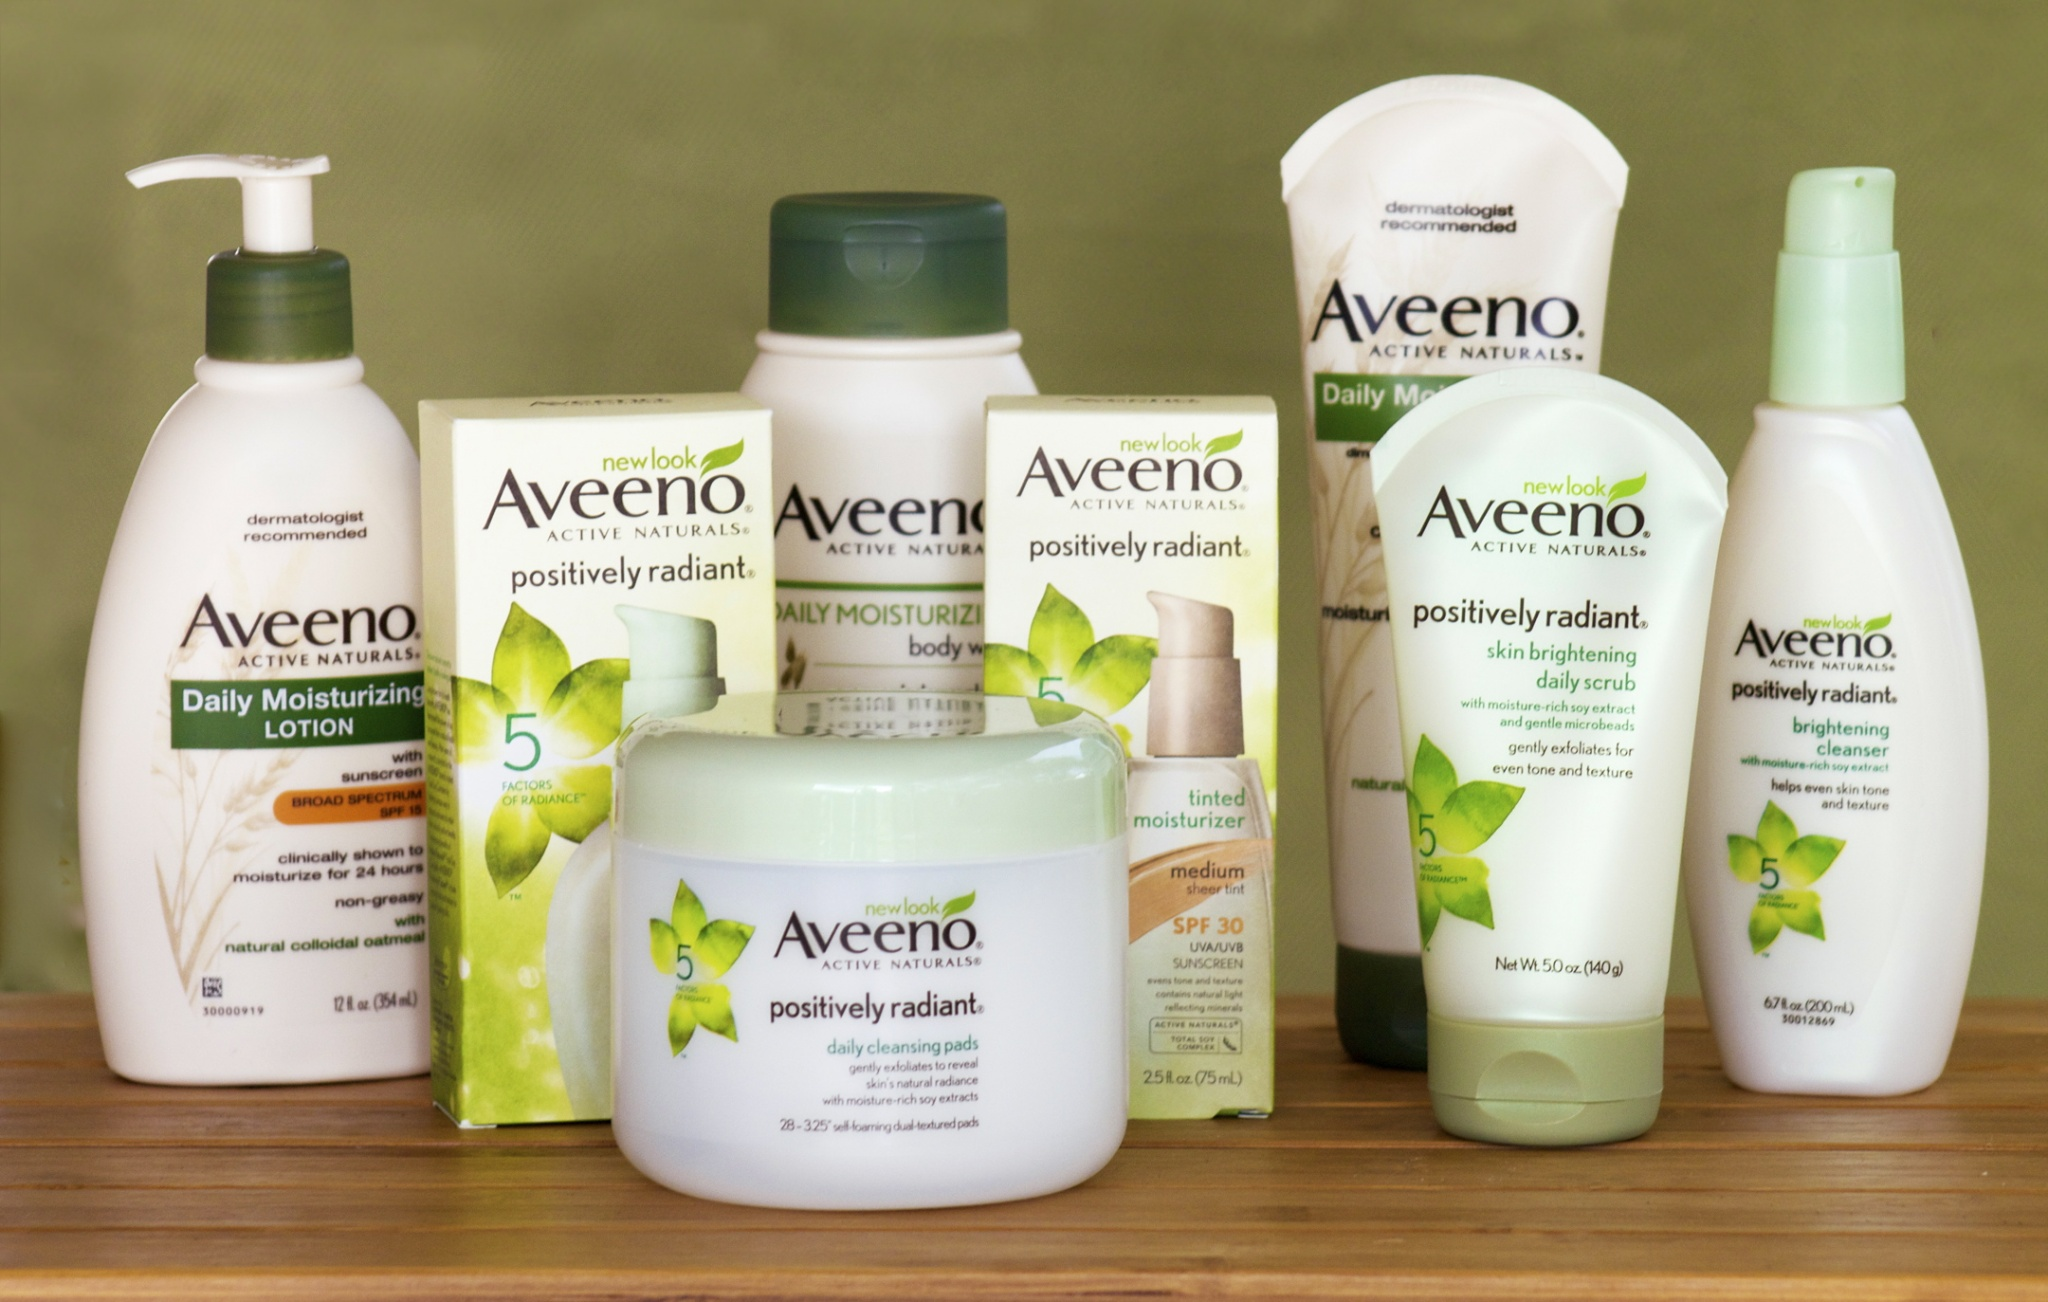 Aveeno Active Naturals - Leaving My Skin Looking Beautiful! - Growing Up Bilingual